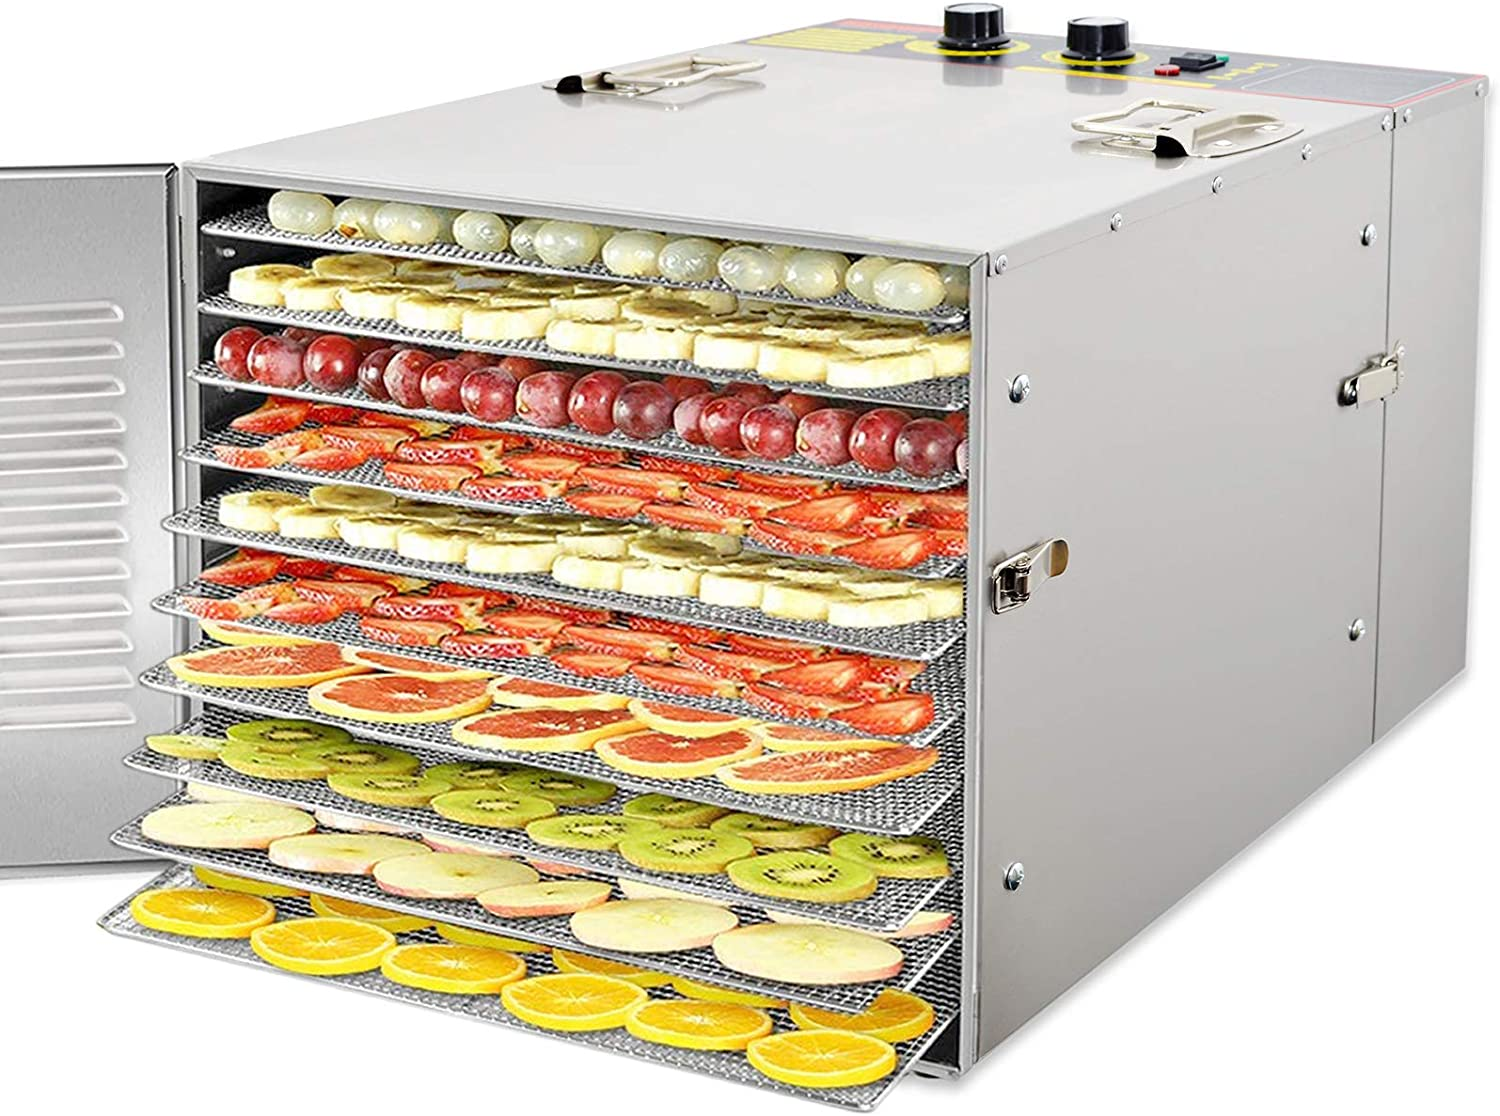 Zz Pro Commercial Stainless Steel Electric Food Dehydrator Machine, Meat or Beef Maker, Fruit Dryer with 10 Trays, 155 Degree Fahrenheit, Jerky Safe with adjustable 15 Hour Timer, 1000W for Restaurant